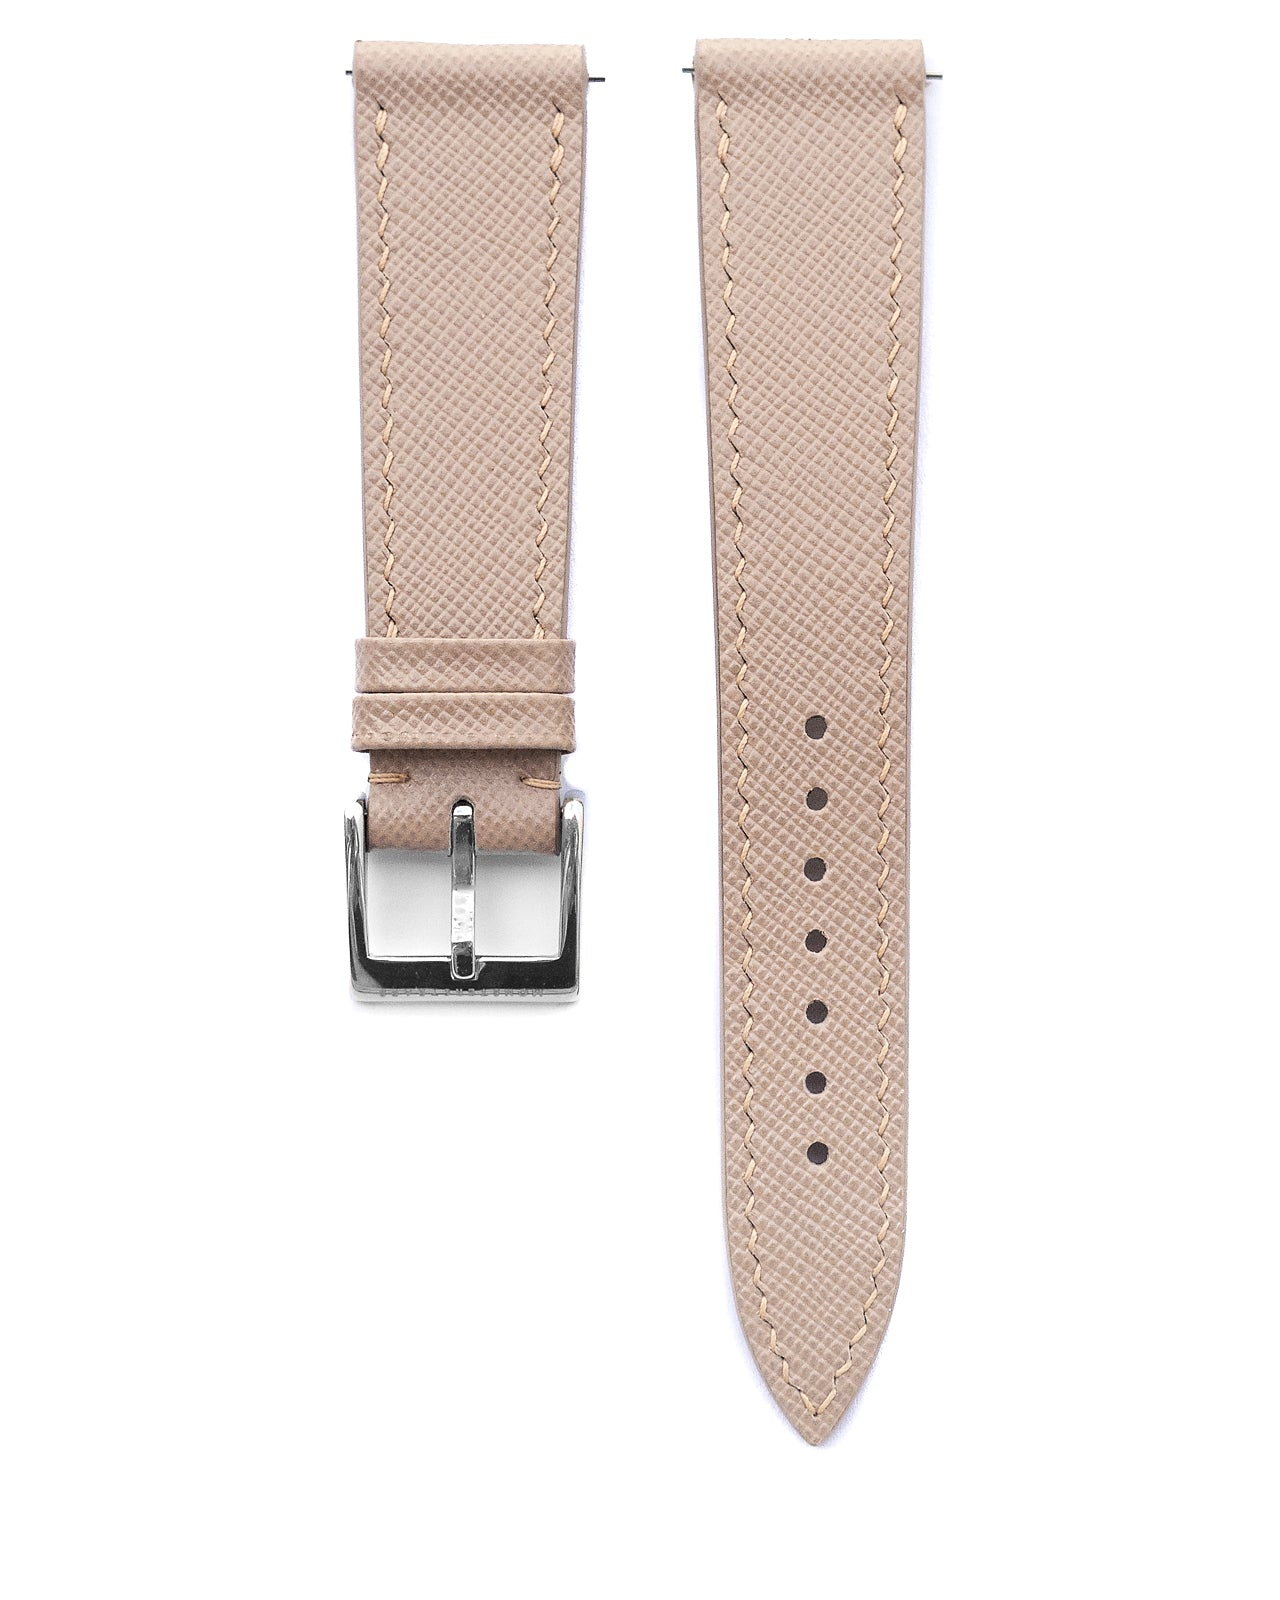 Saffiano Leather Strap (Beige)